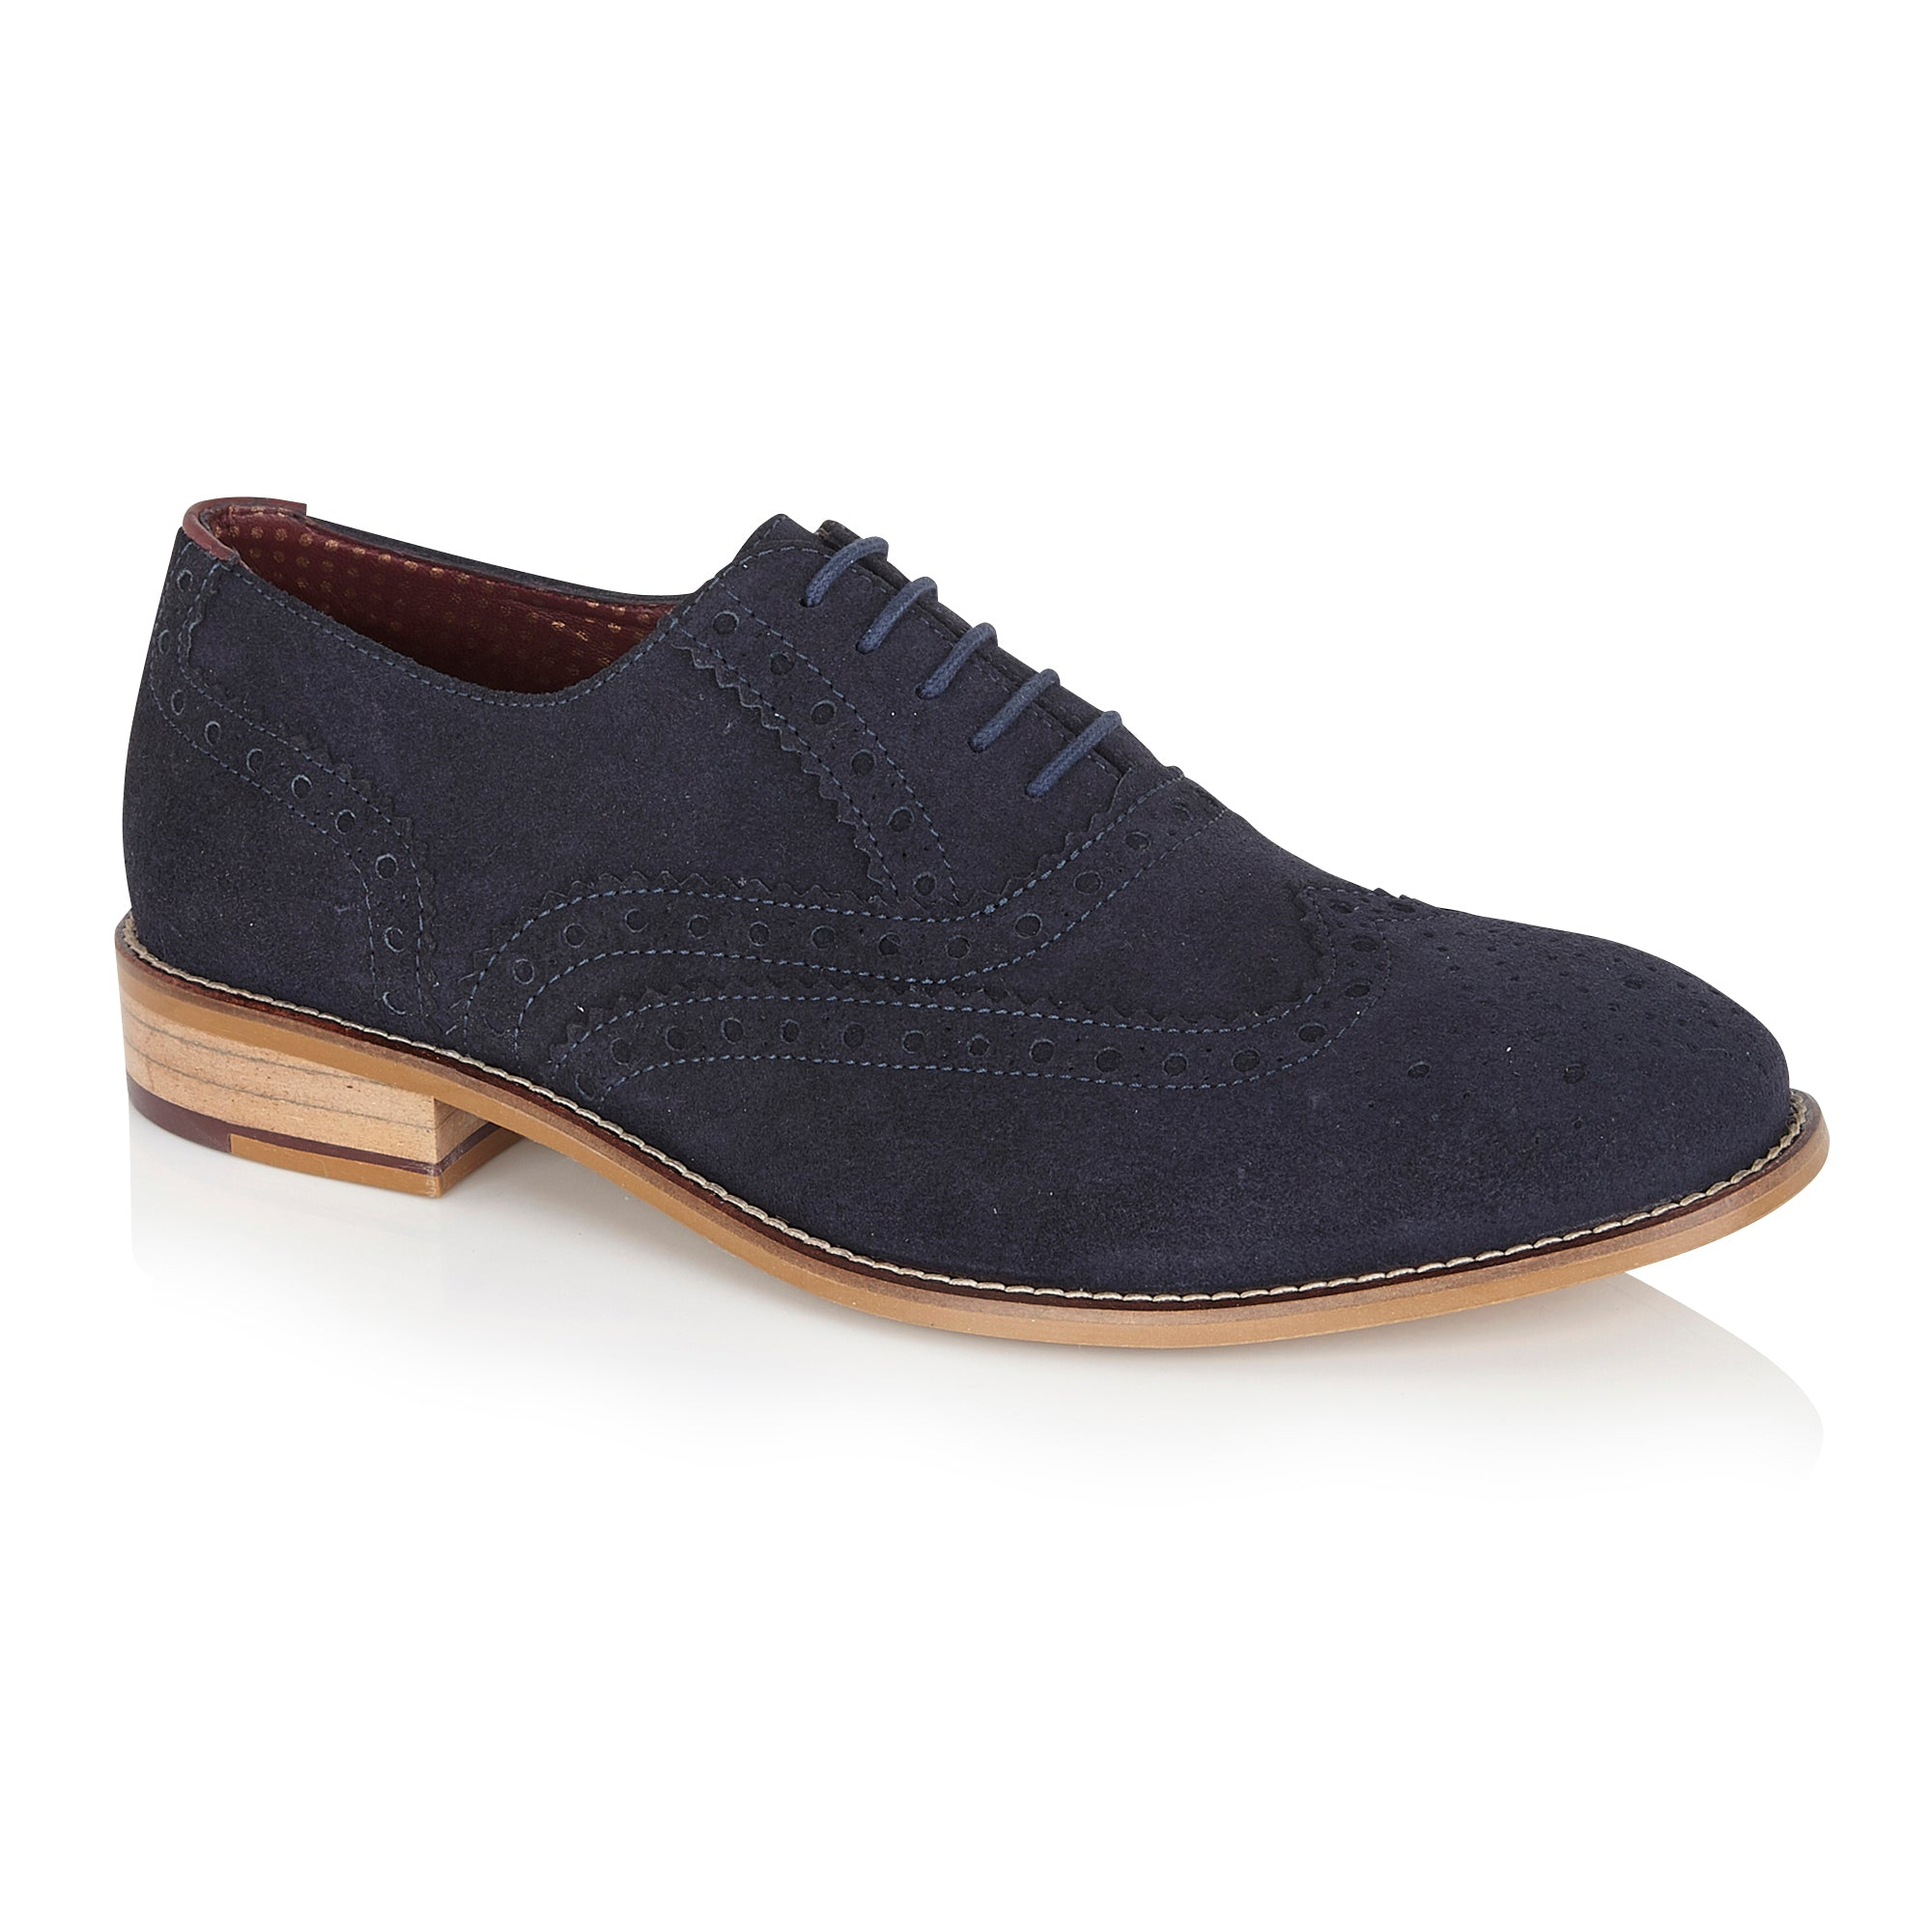 Clive Navy, Shoes, London Brogues  - London Brogues